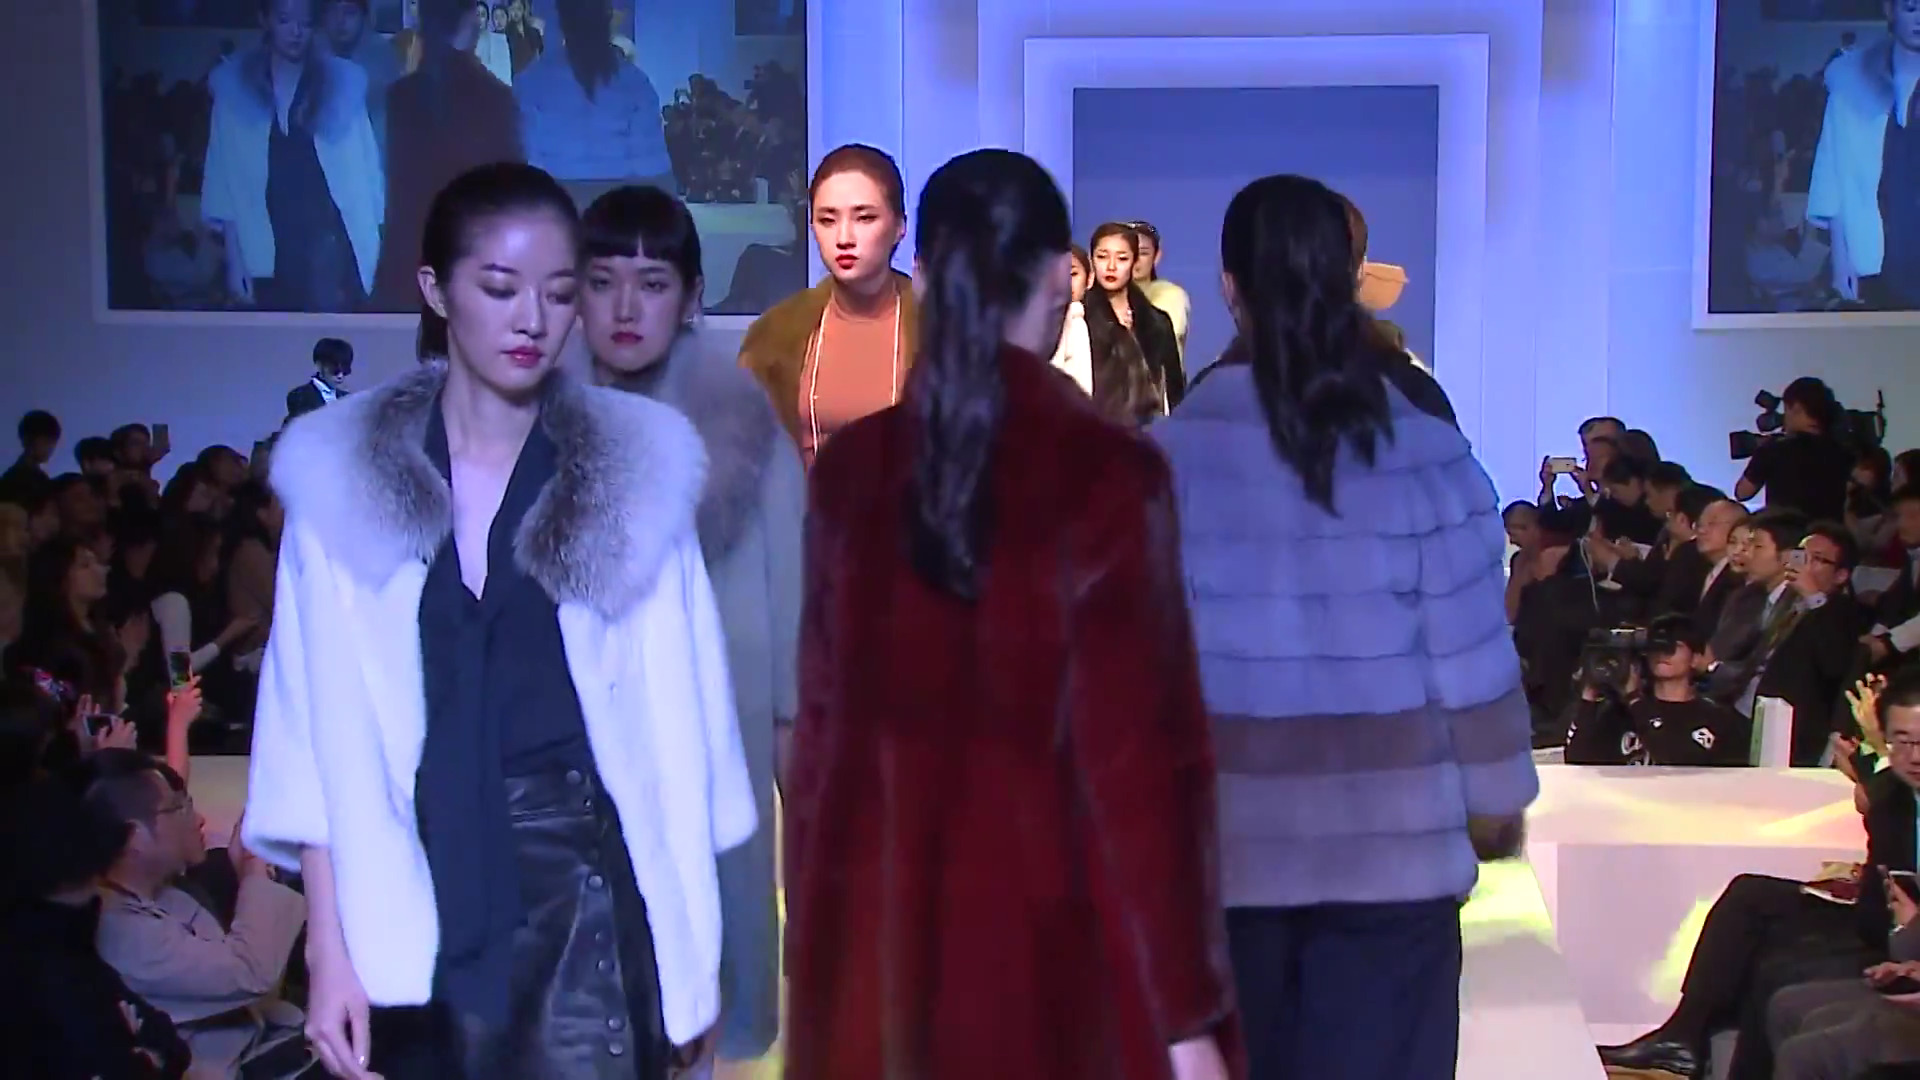 snapshot - ASIA FUR DESIGN SHOWCASE 2015 - Boutique Showcase